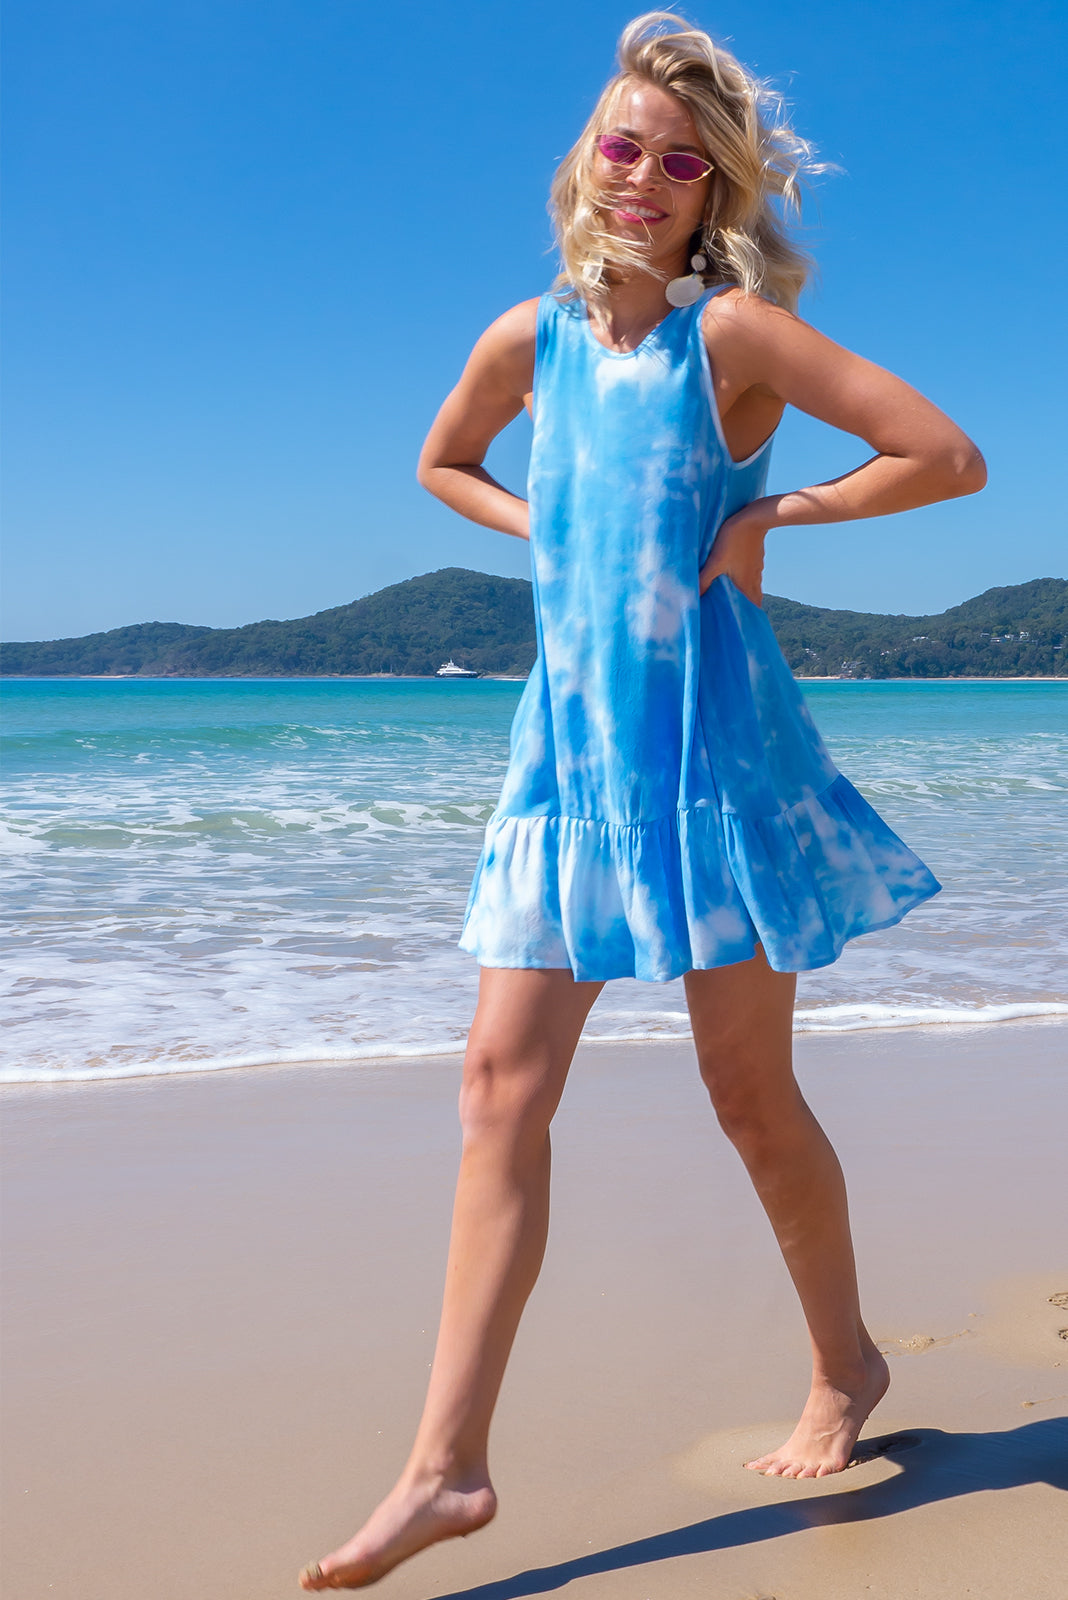 Perfect beach frock, the Cloudland Blue Skies Swing Dress features back neck tie, sleeveless, breezy skirt, side pockets and 100% rayon in blue and white tie dye.